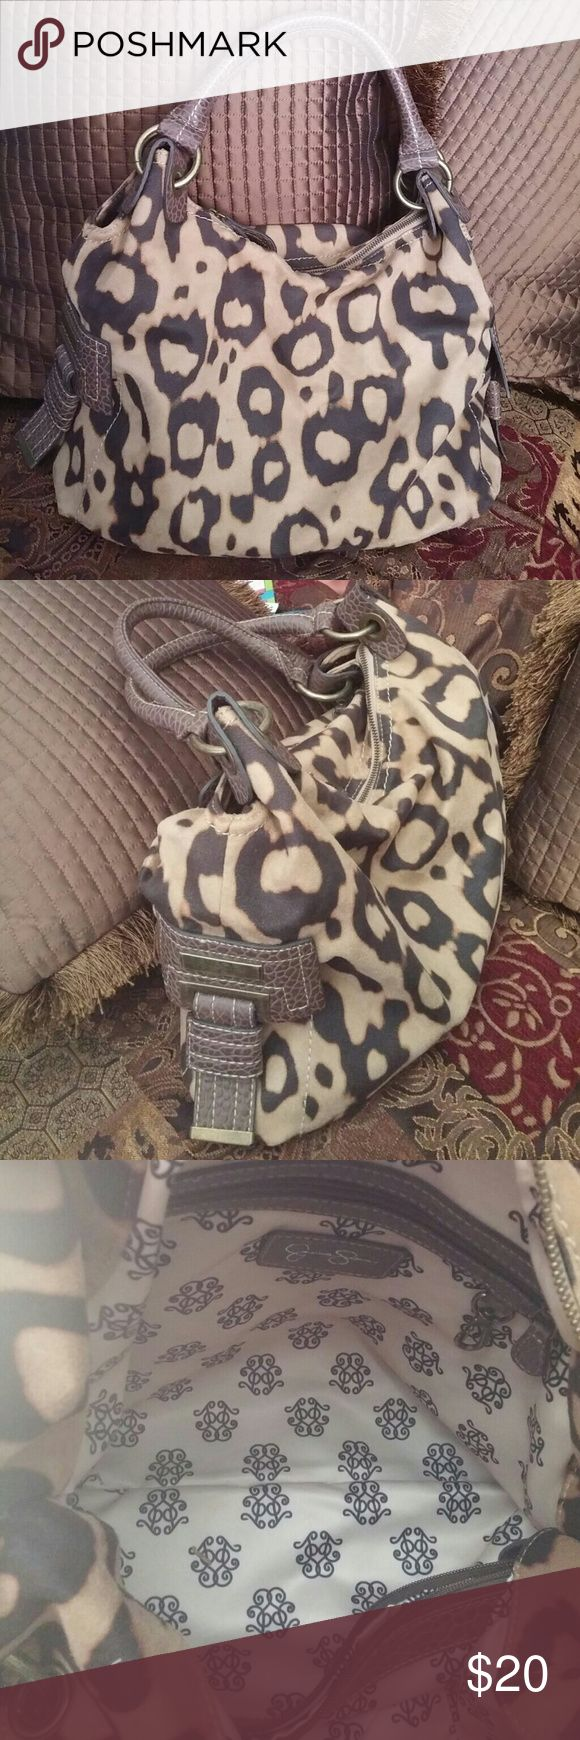 Jessica Simpson Purse Animal Print Jessica Simpson Purse Jessica Simpson Bags